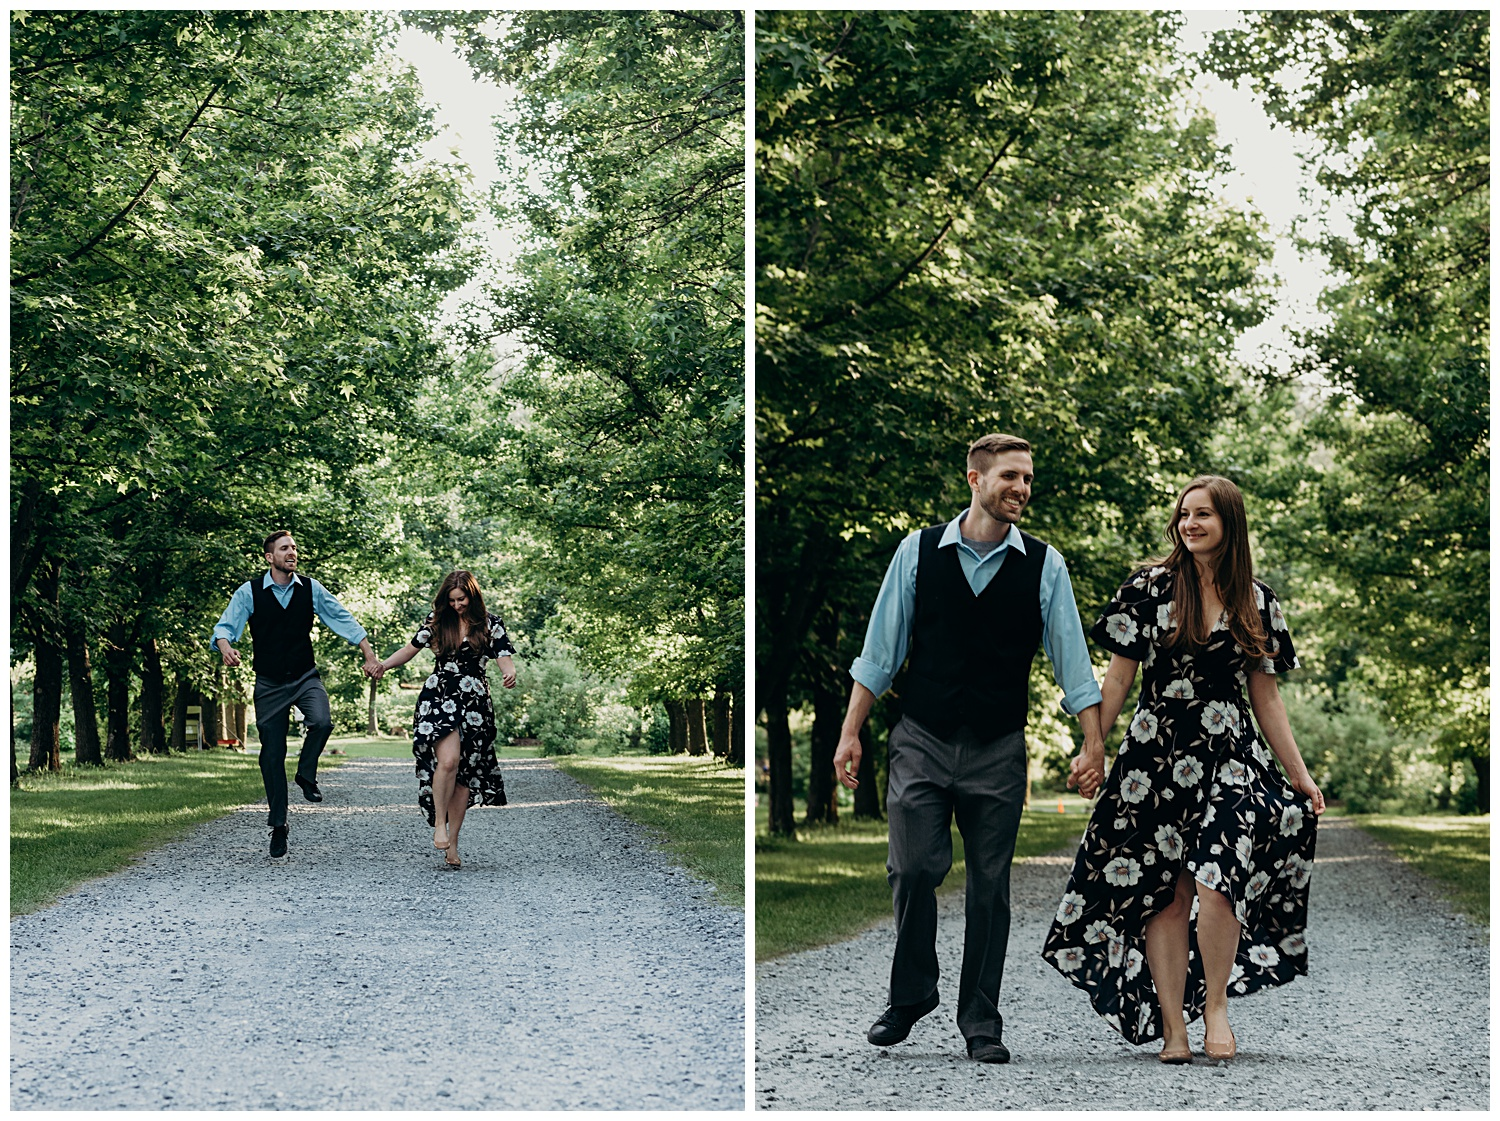 Megan-Graham-Photography-best-dc-wedding-engagement-photographer-surreybrooke-laura-eric-frederick16.jpg